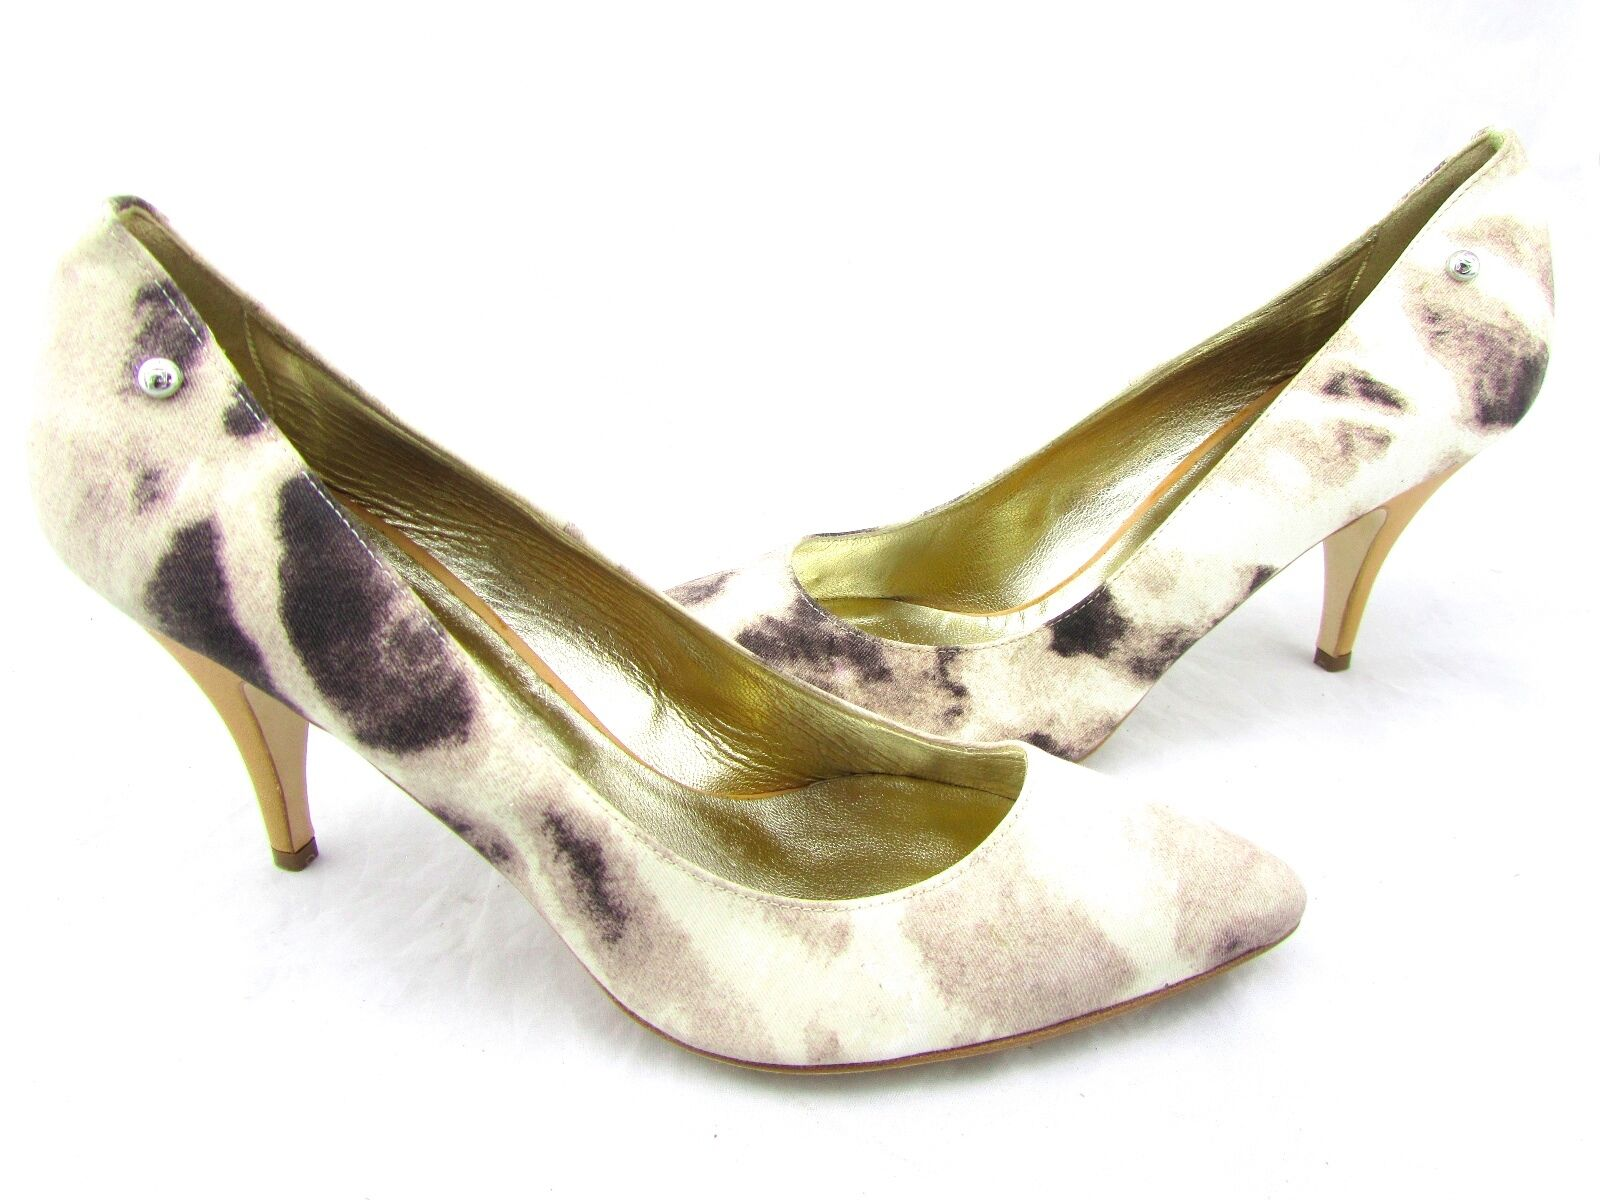 Nuova lista  430 JUST JUST JUST CAVALLI BY ROBERTO CAVALLI Art Abstract Canvas Pumps Heels  11 41  risparmia fino al 70%